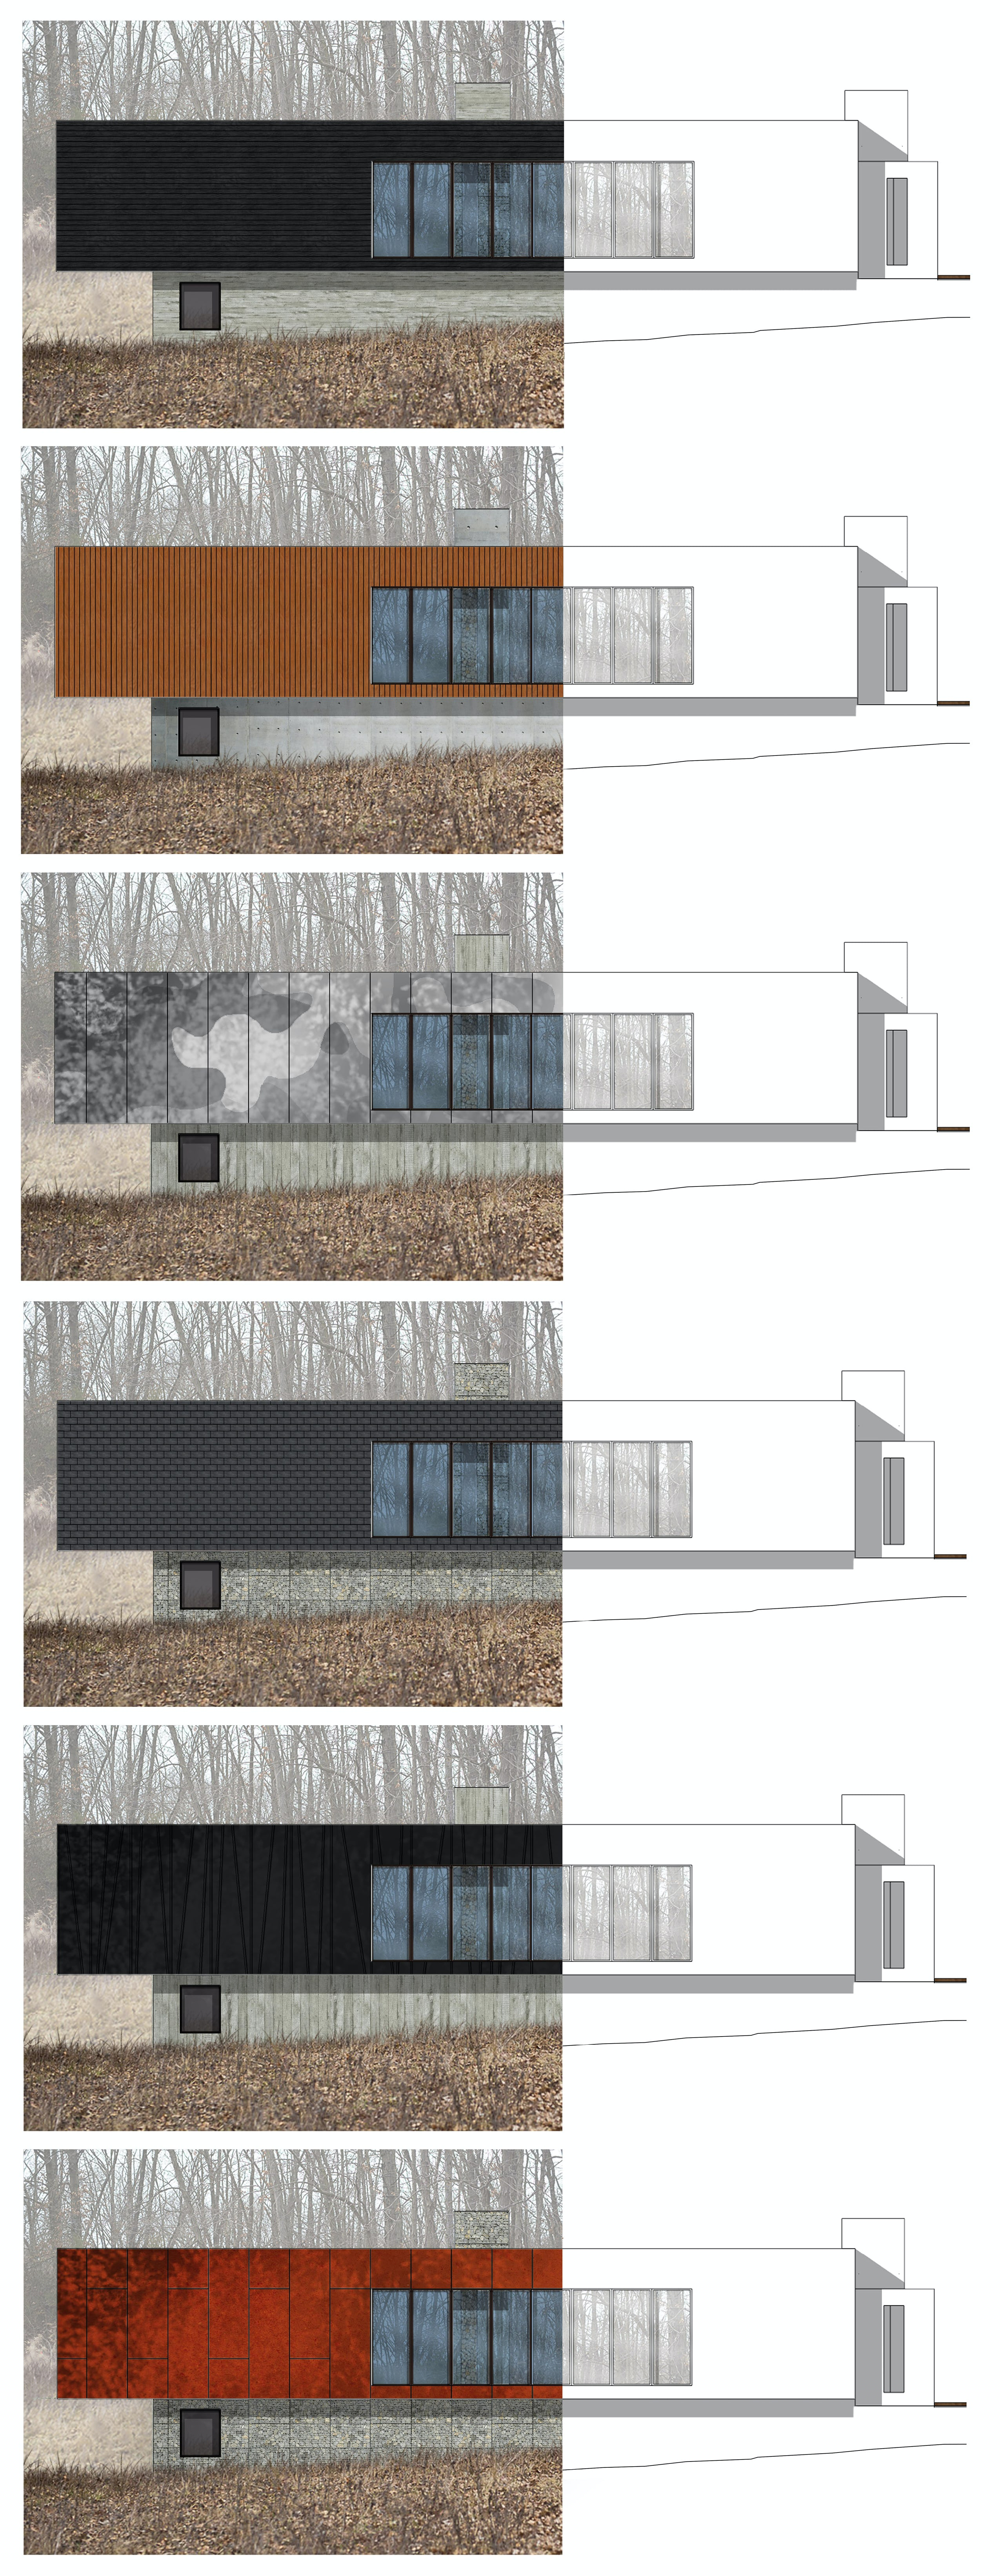 Combined elevations level architecture incorporated